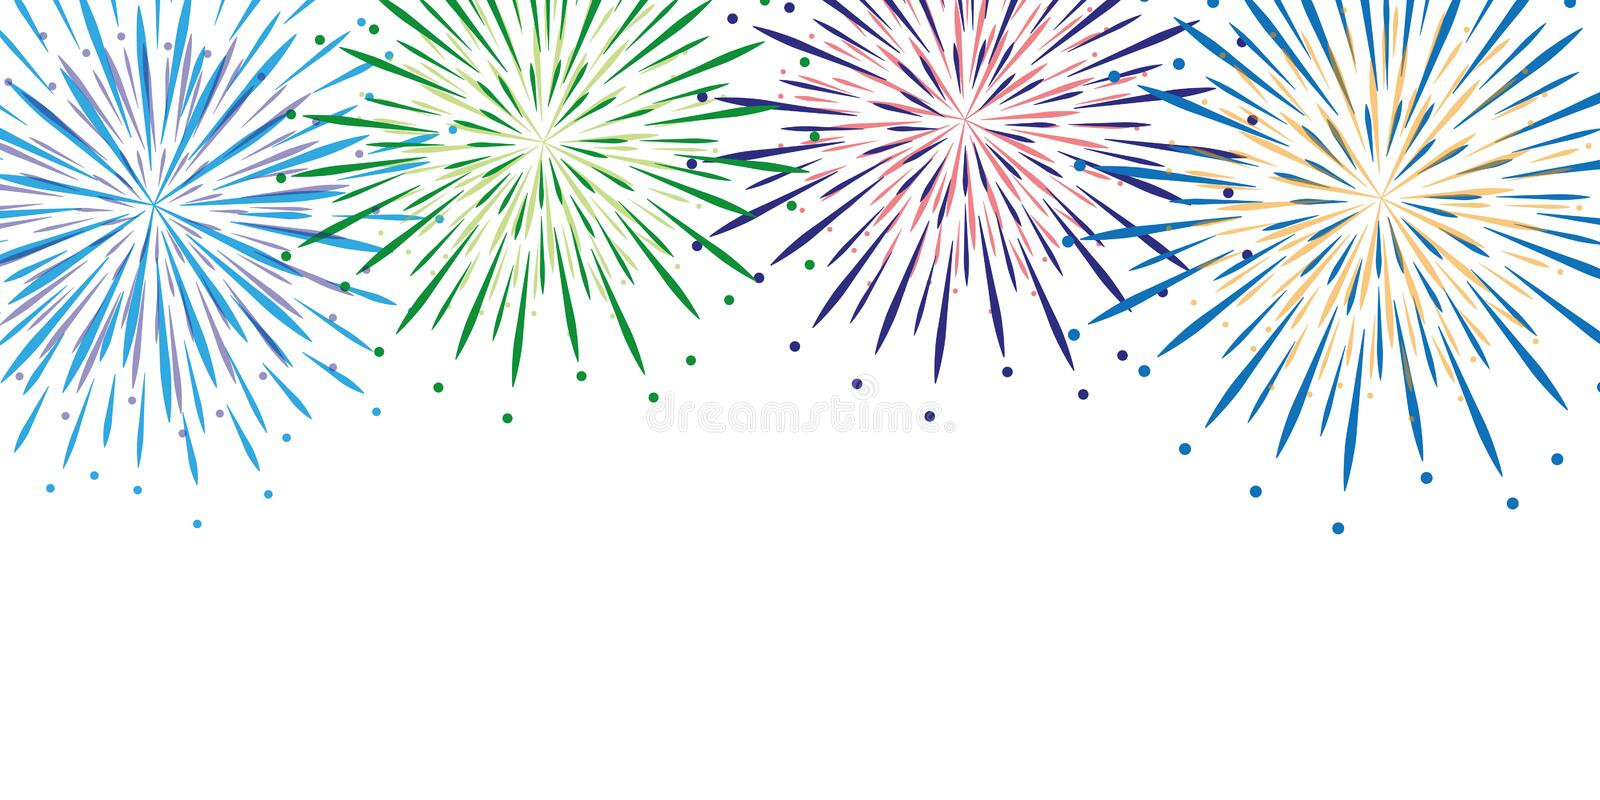 Colorful fireworks background isolated royalty free illustration